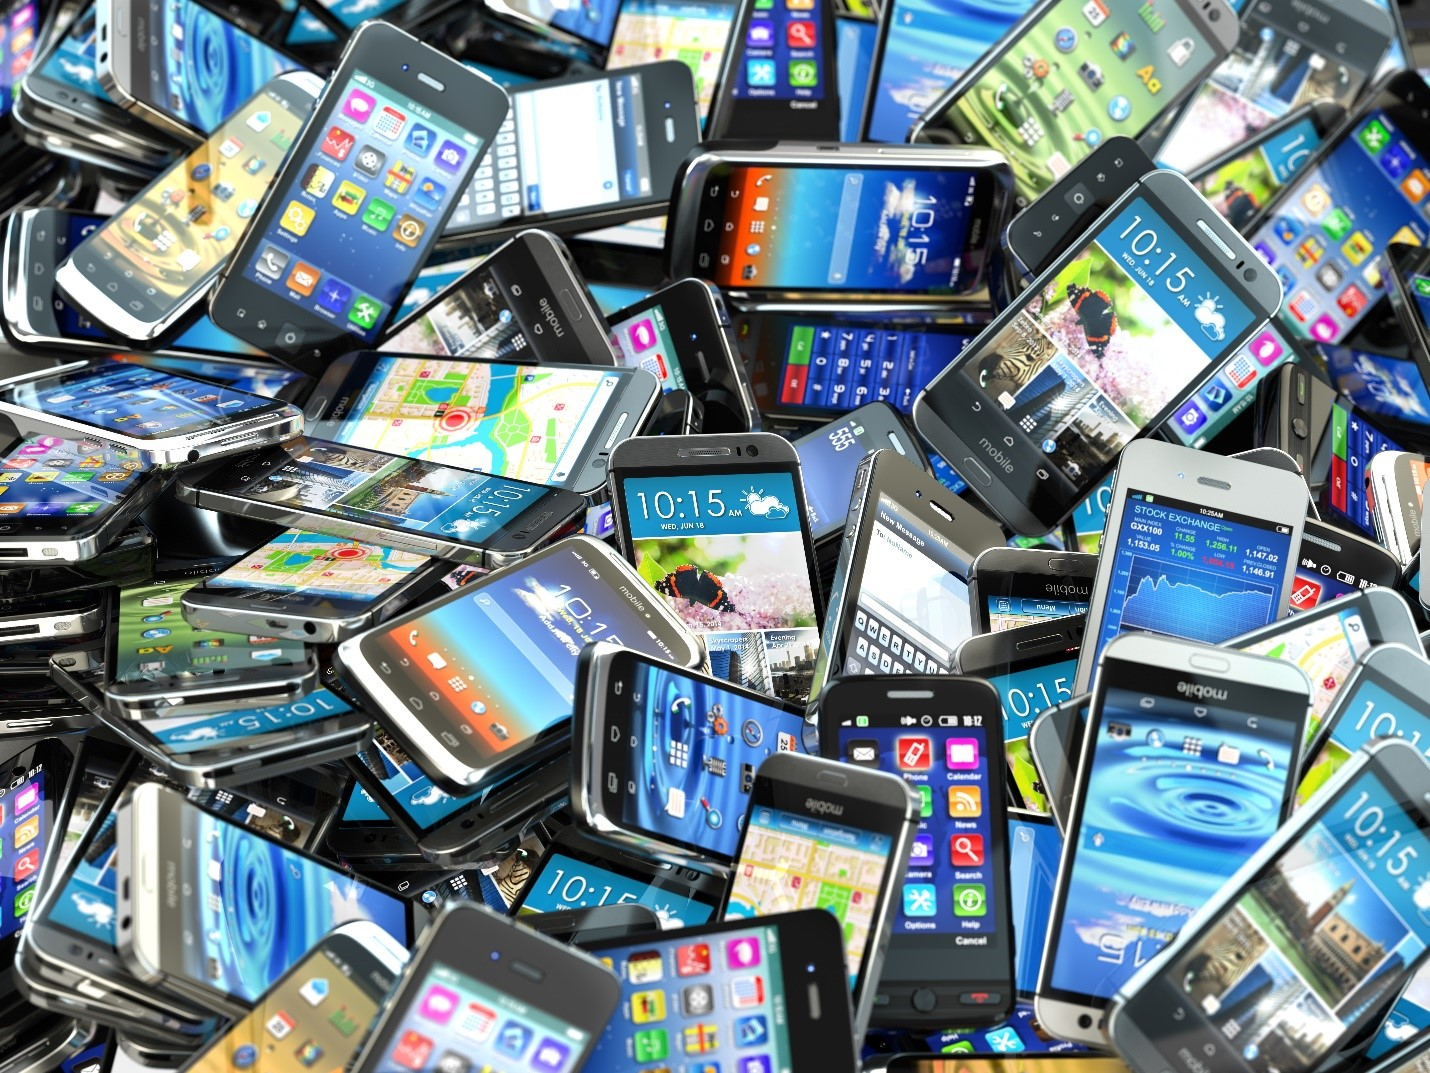 Used-smartphones-and-recycling